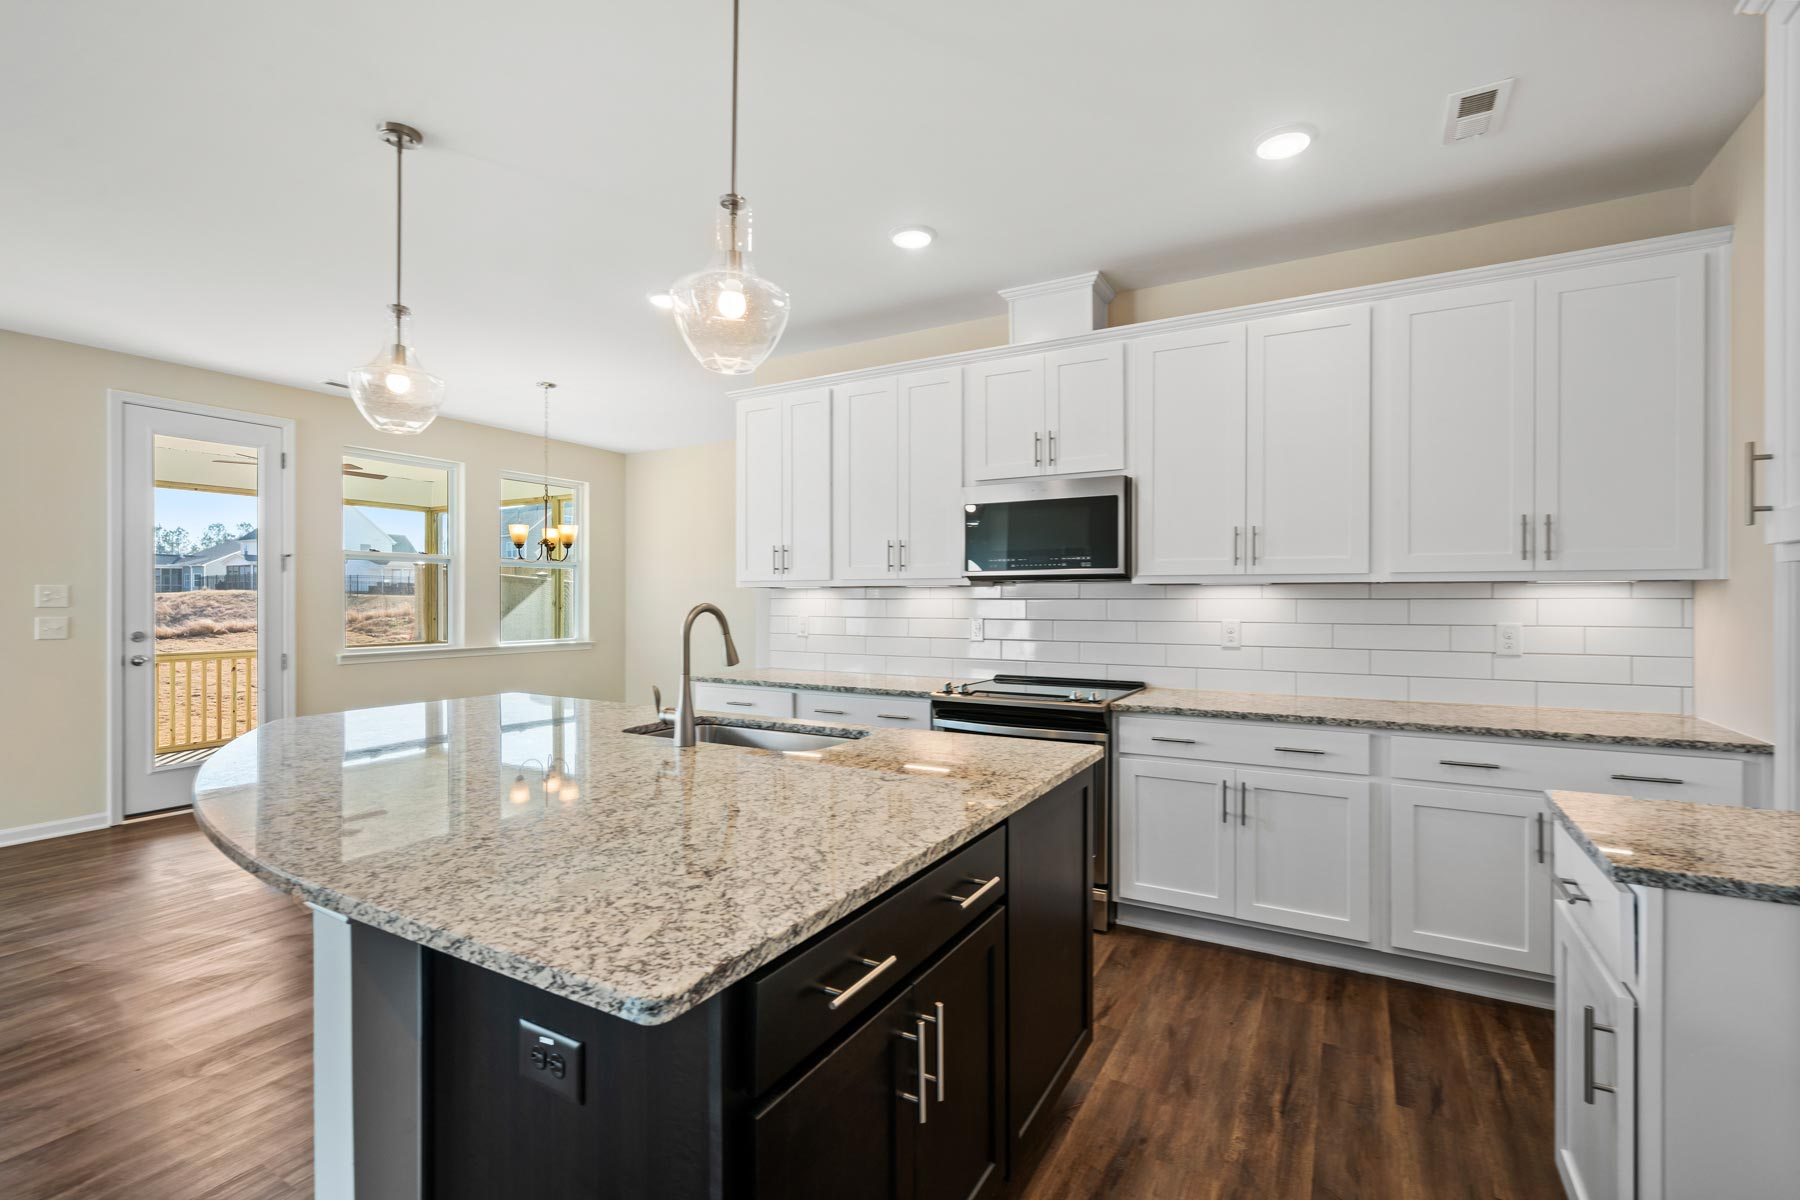 Decker Plan Kitchen at Bent Tree in Fuquay-Varina North Carolina by Mattamy Homes